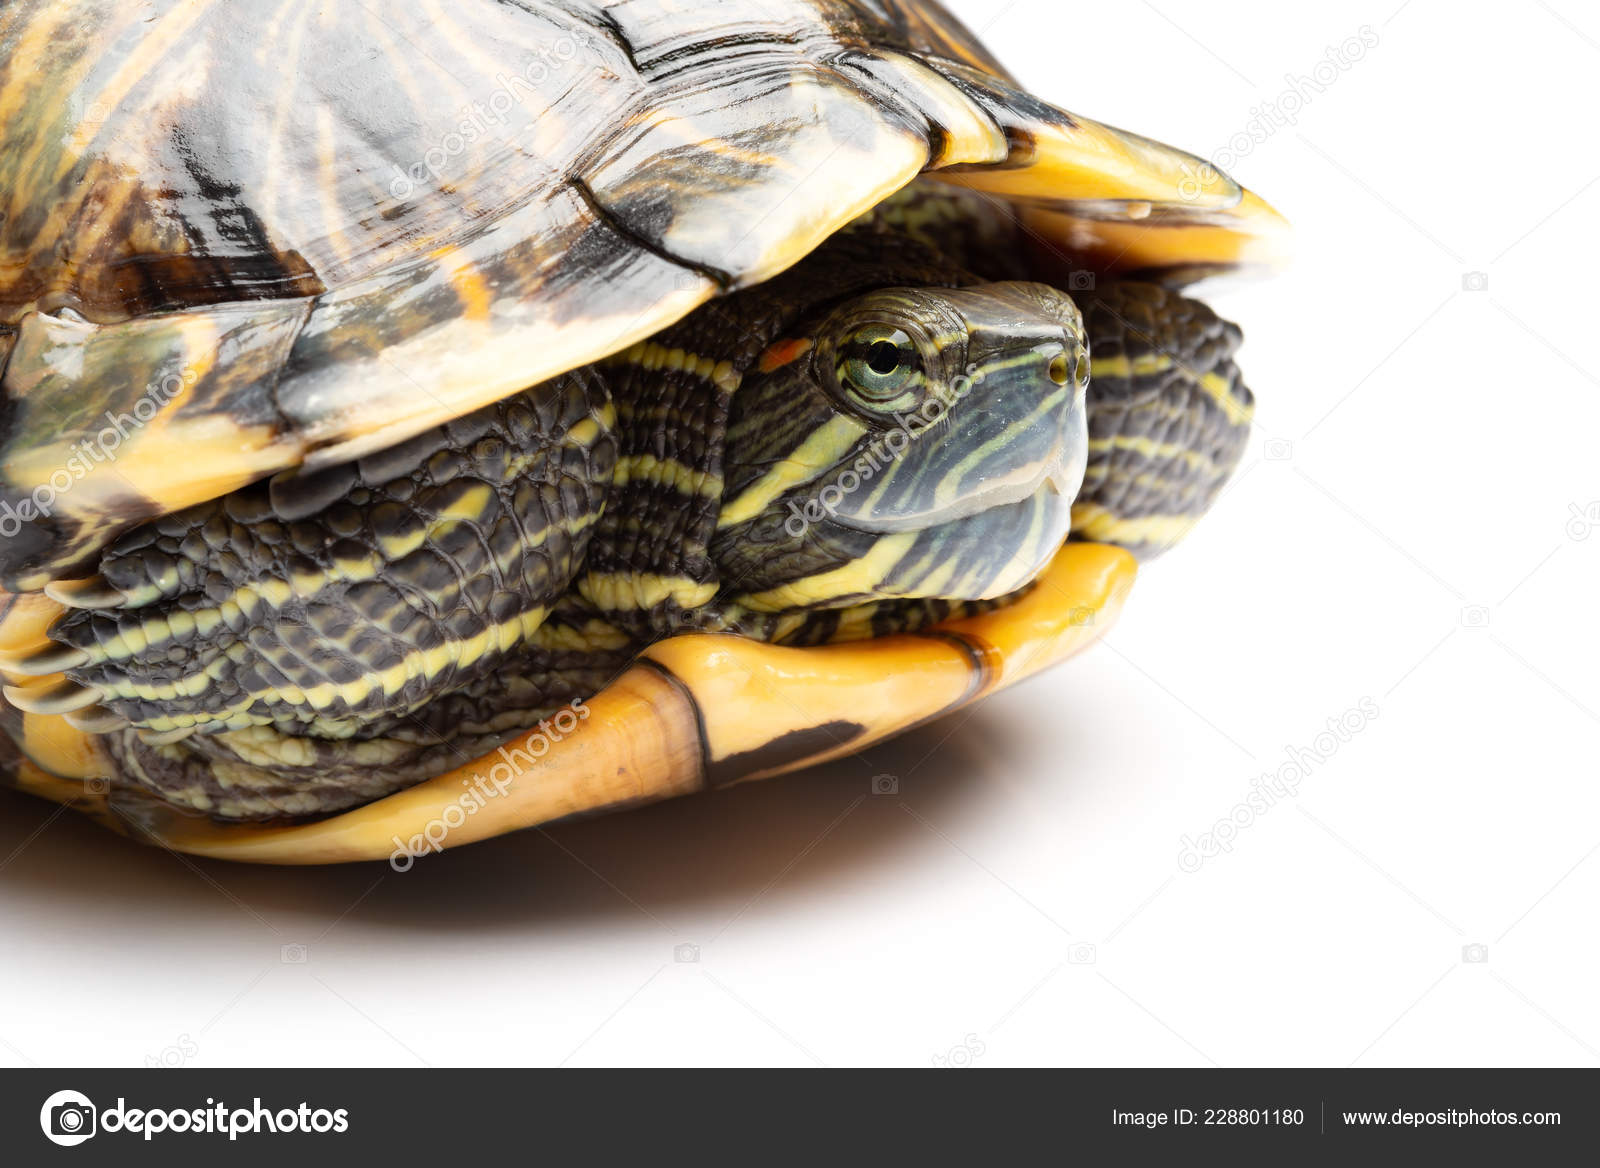 Red Eared Slider Turtle Side View Side View Pet Turtle Red Eared Slider Trachemys Scripta Elegans Stock Photo C Freerlaw 228801180